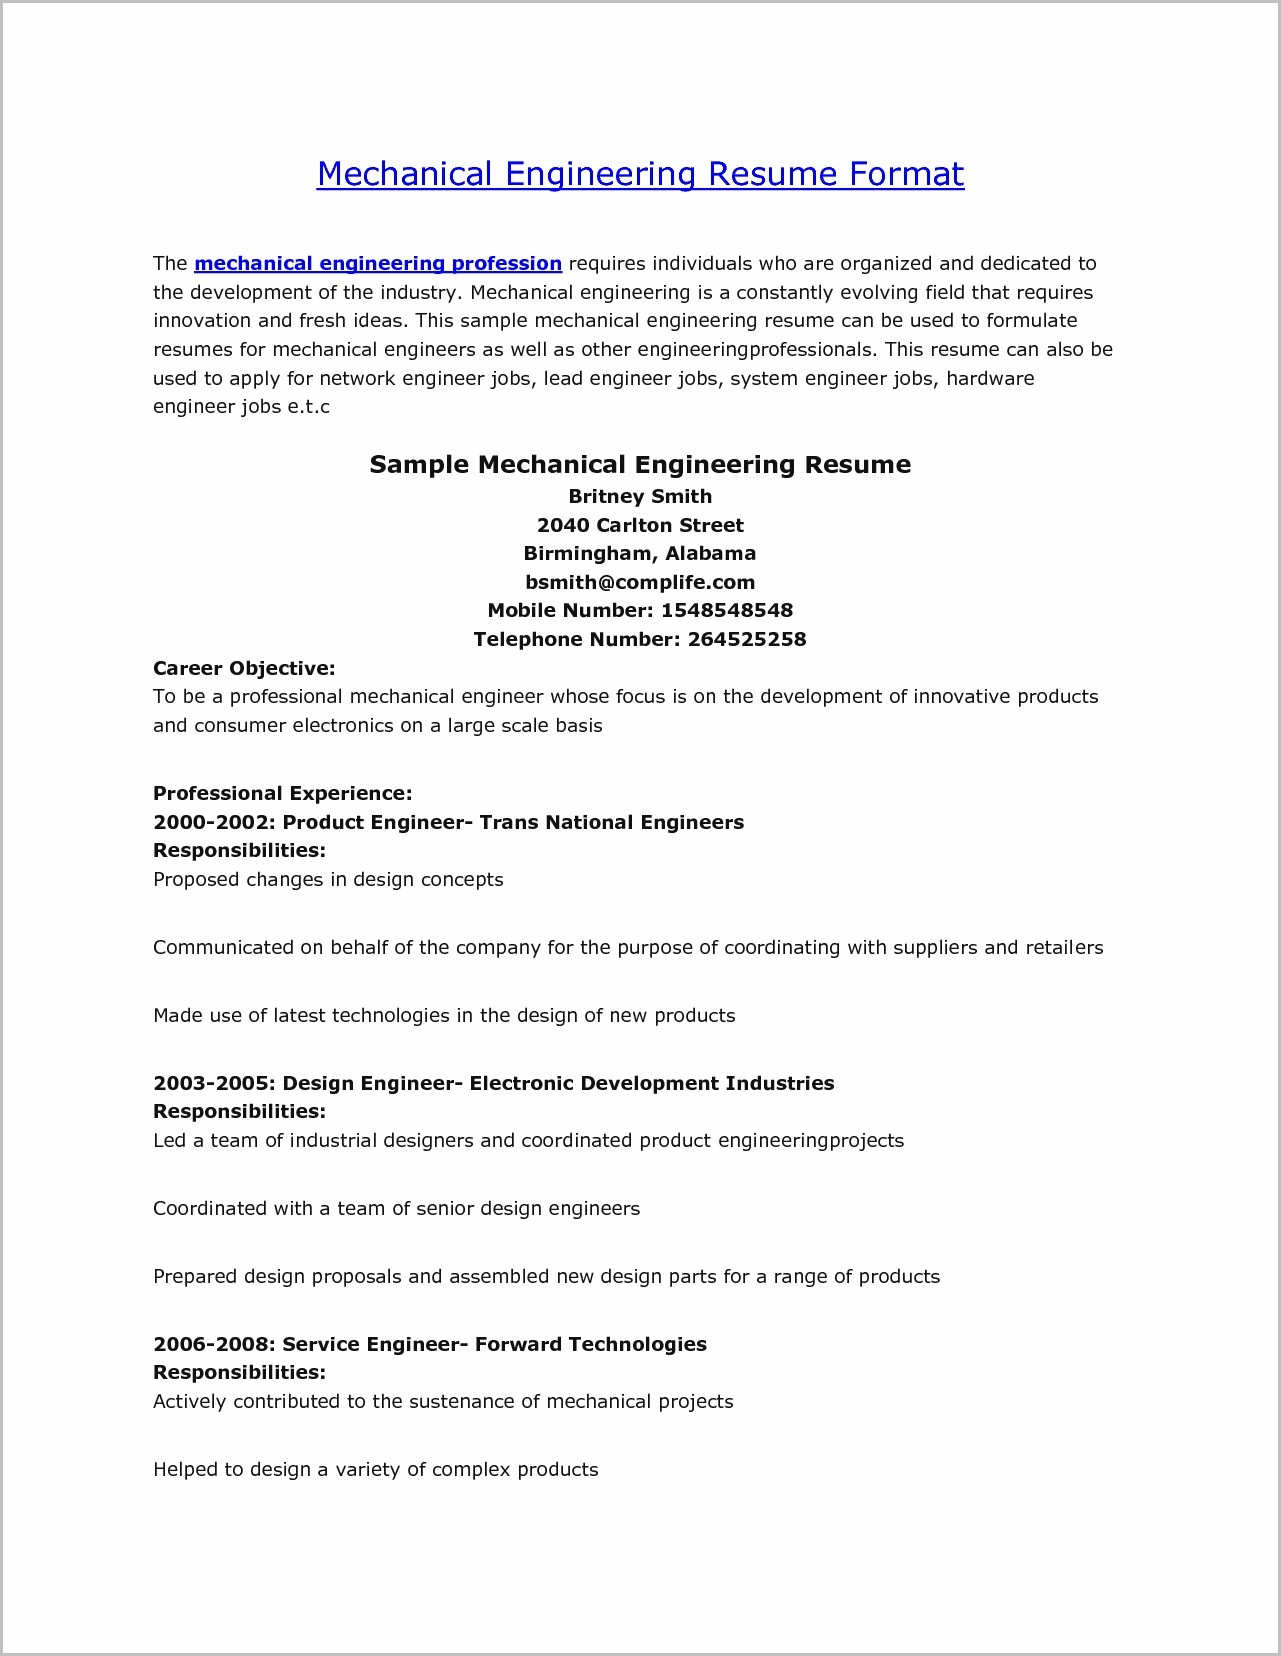 Sample Cover Letter For Resume Of Mechanical Engineer